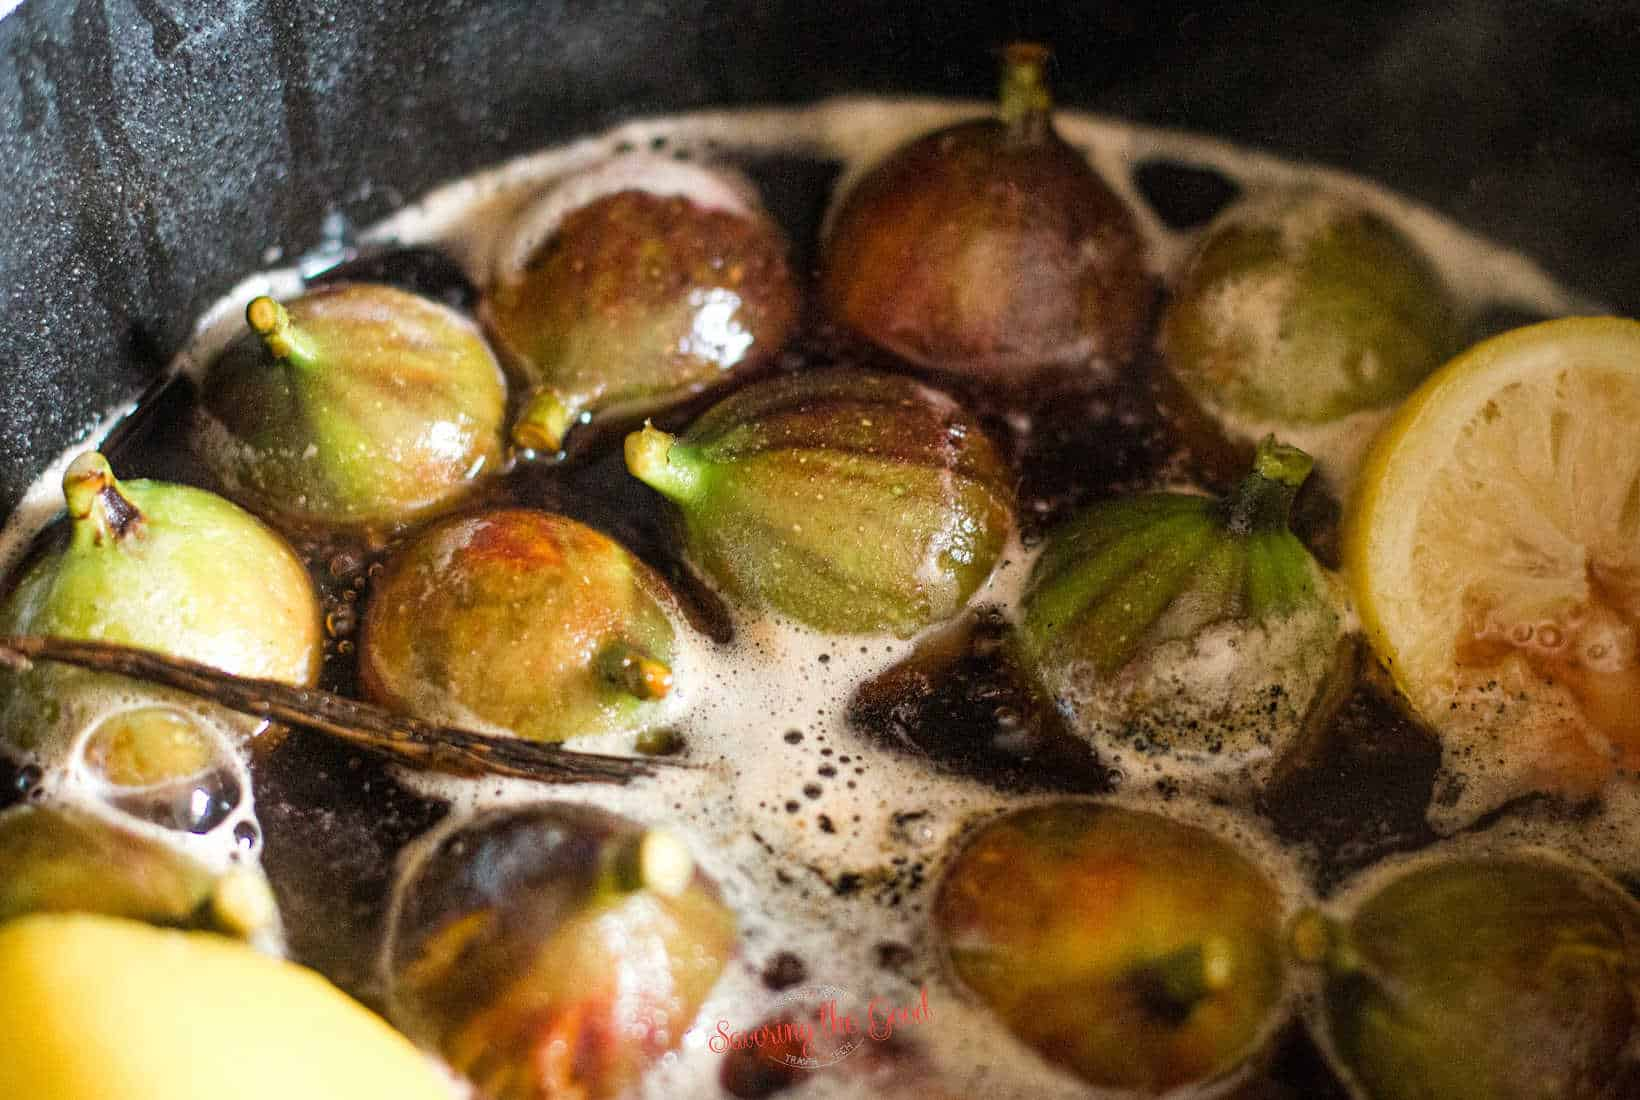 fresh figs in sugar syrup, starting to poach